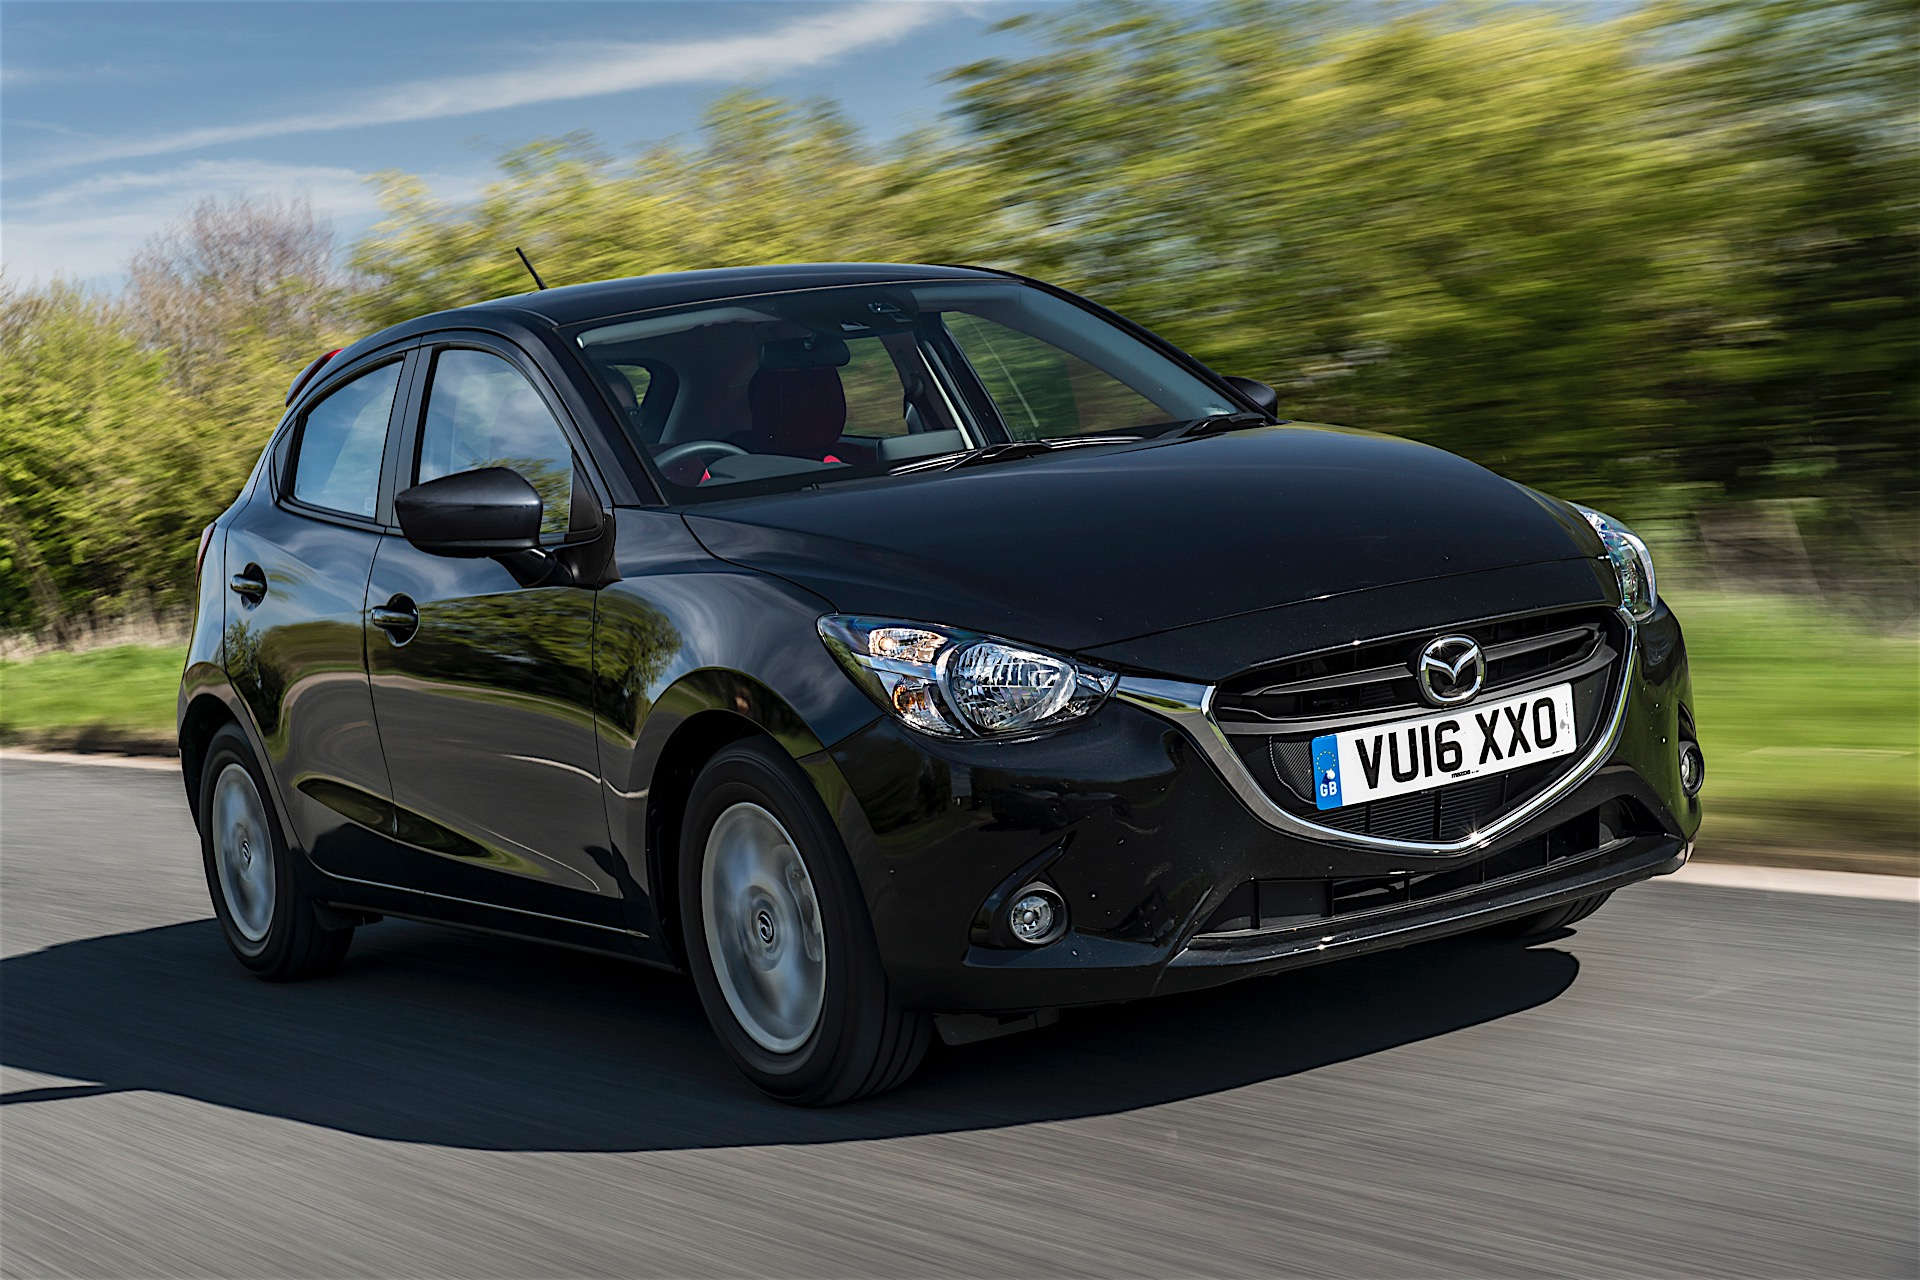 mazda2 gets limited series in uk it 39 s called red edition autoevolution. Black Bedroom Furniture Sets. Home Design Ideas